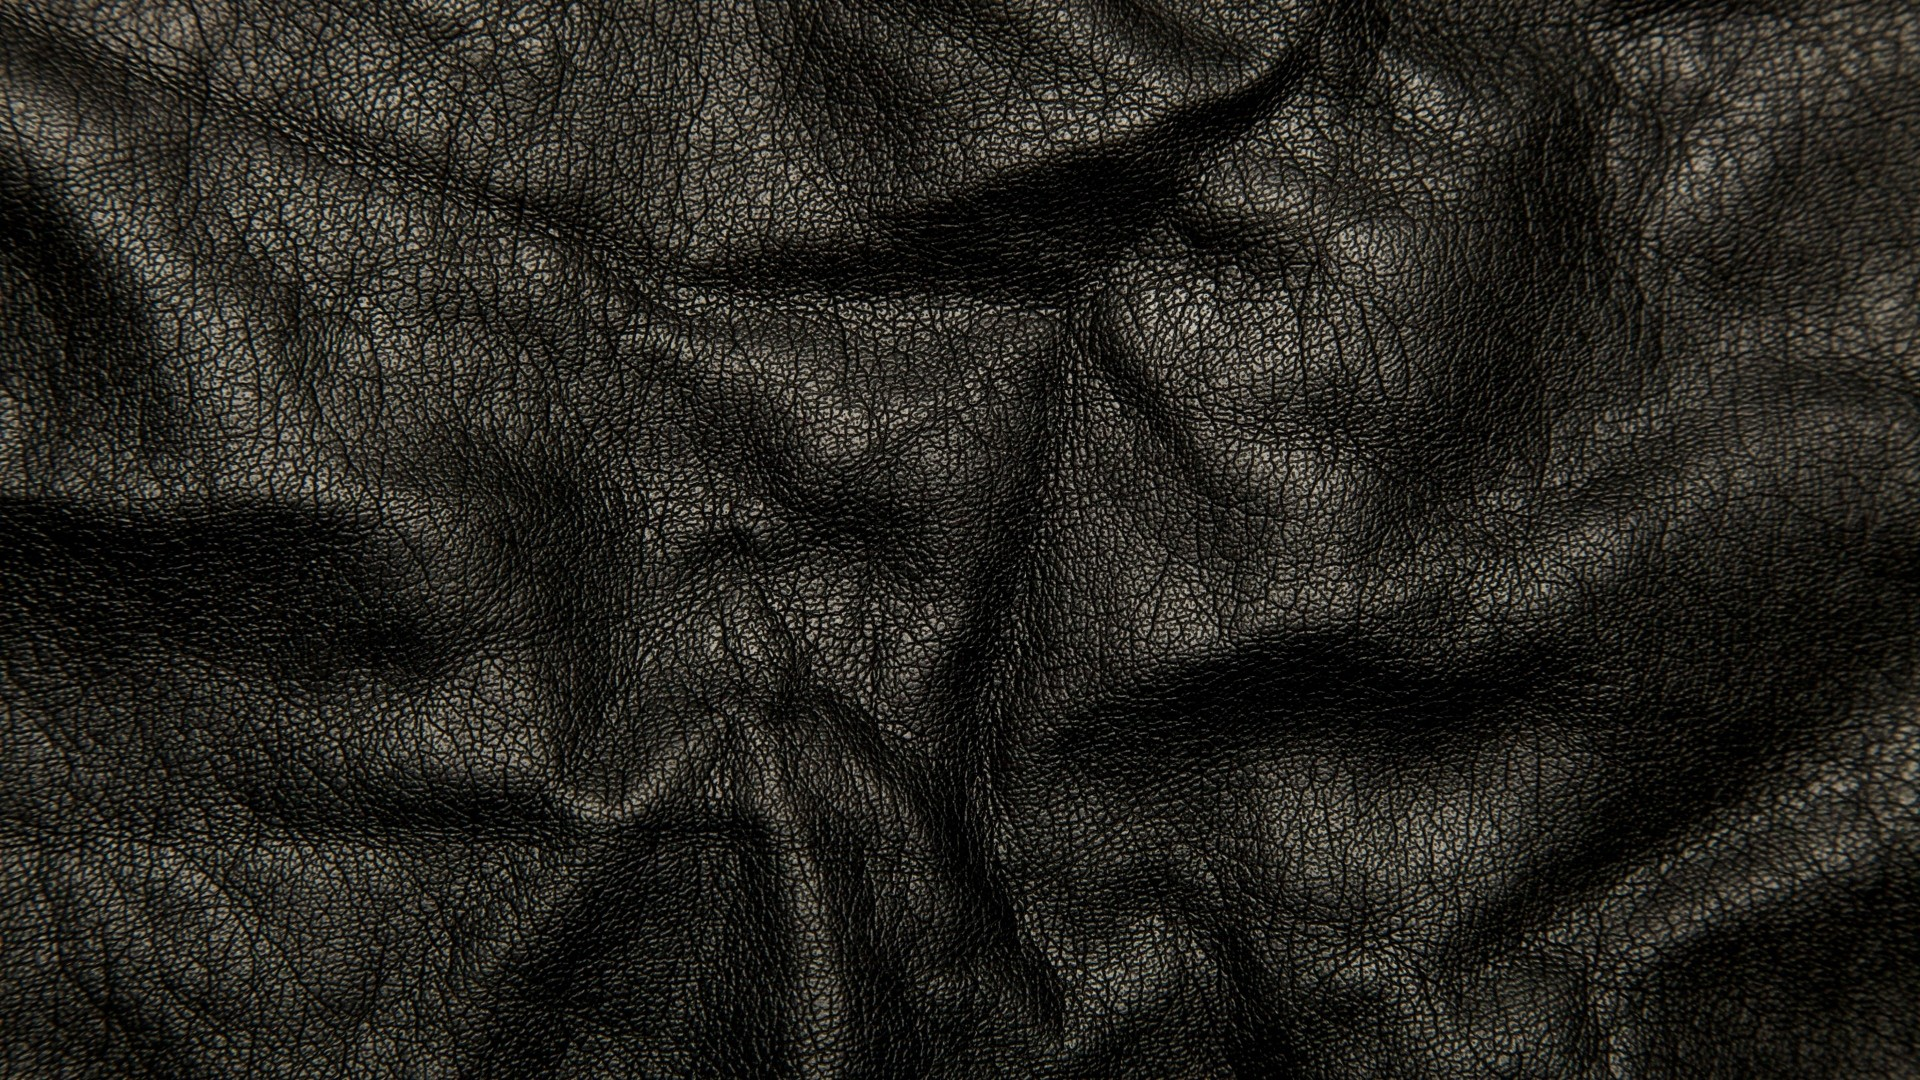 1920x1080 Preview wallpaper leather, black, background, texture, wrinkles, cracks